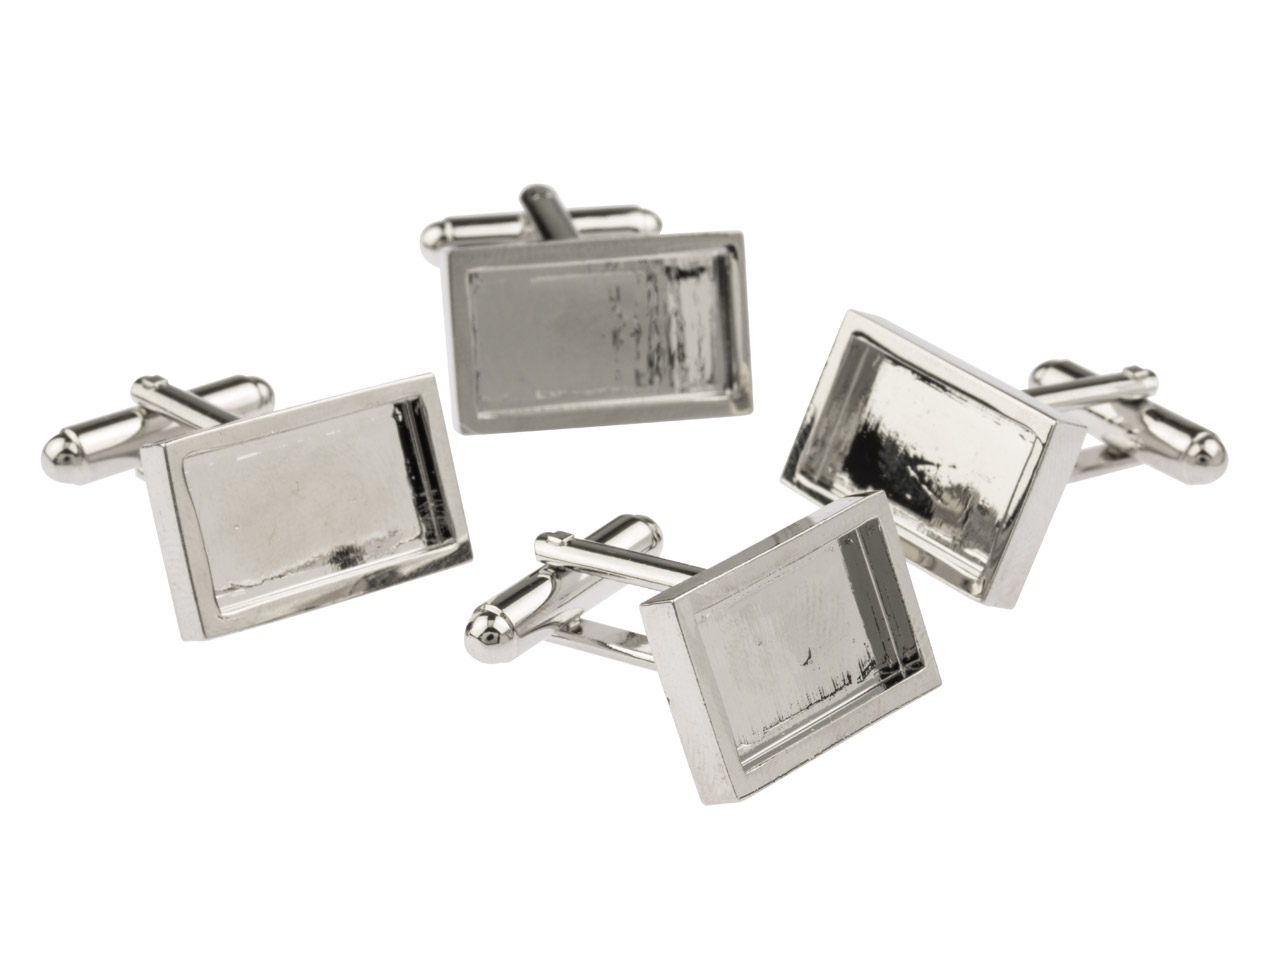 Rhodium Plated Oblong Heavy Weight Cuff Link 18x10mm Pack of 4